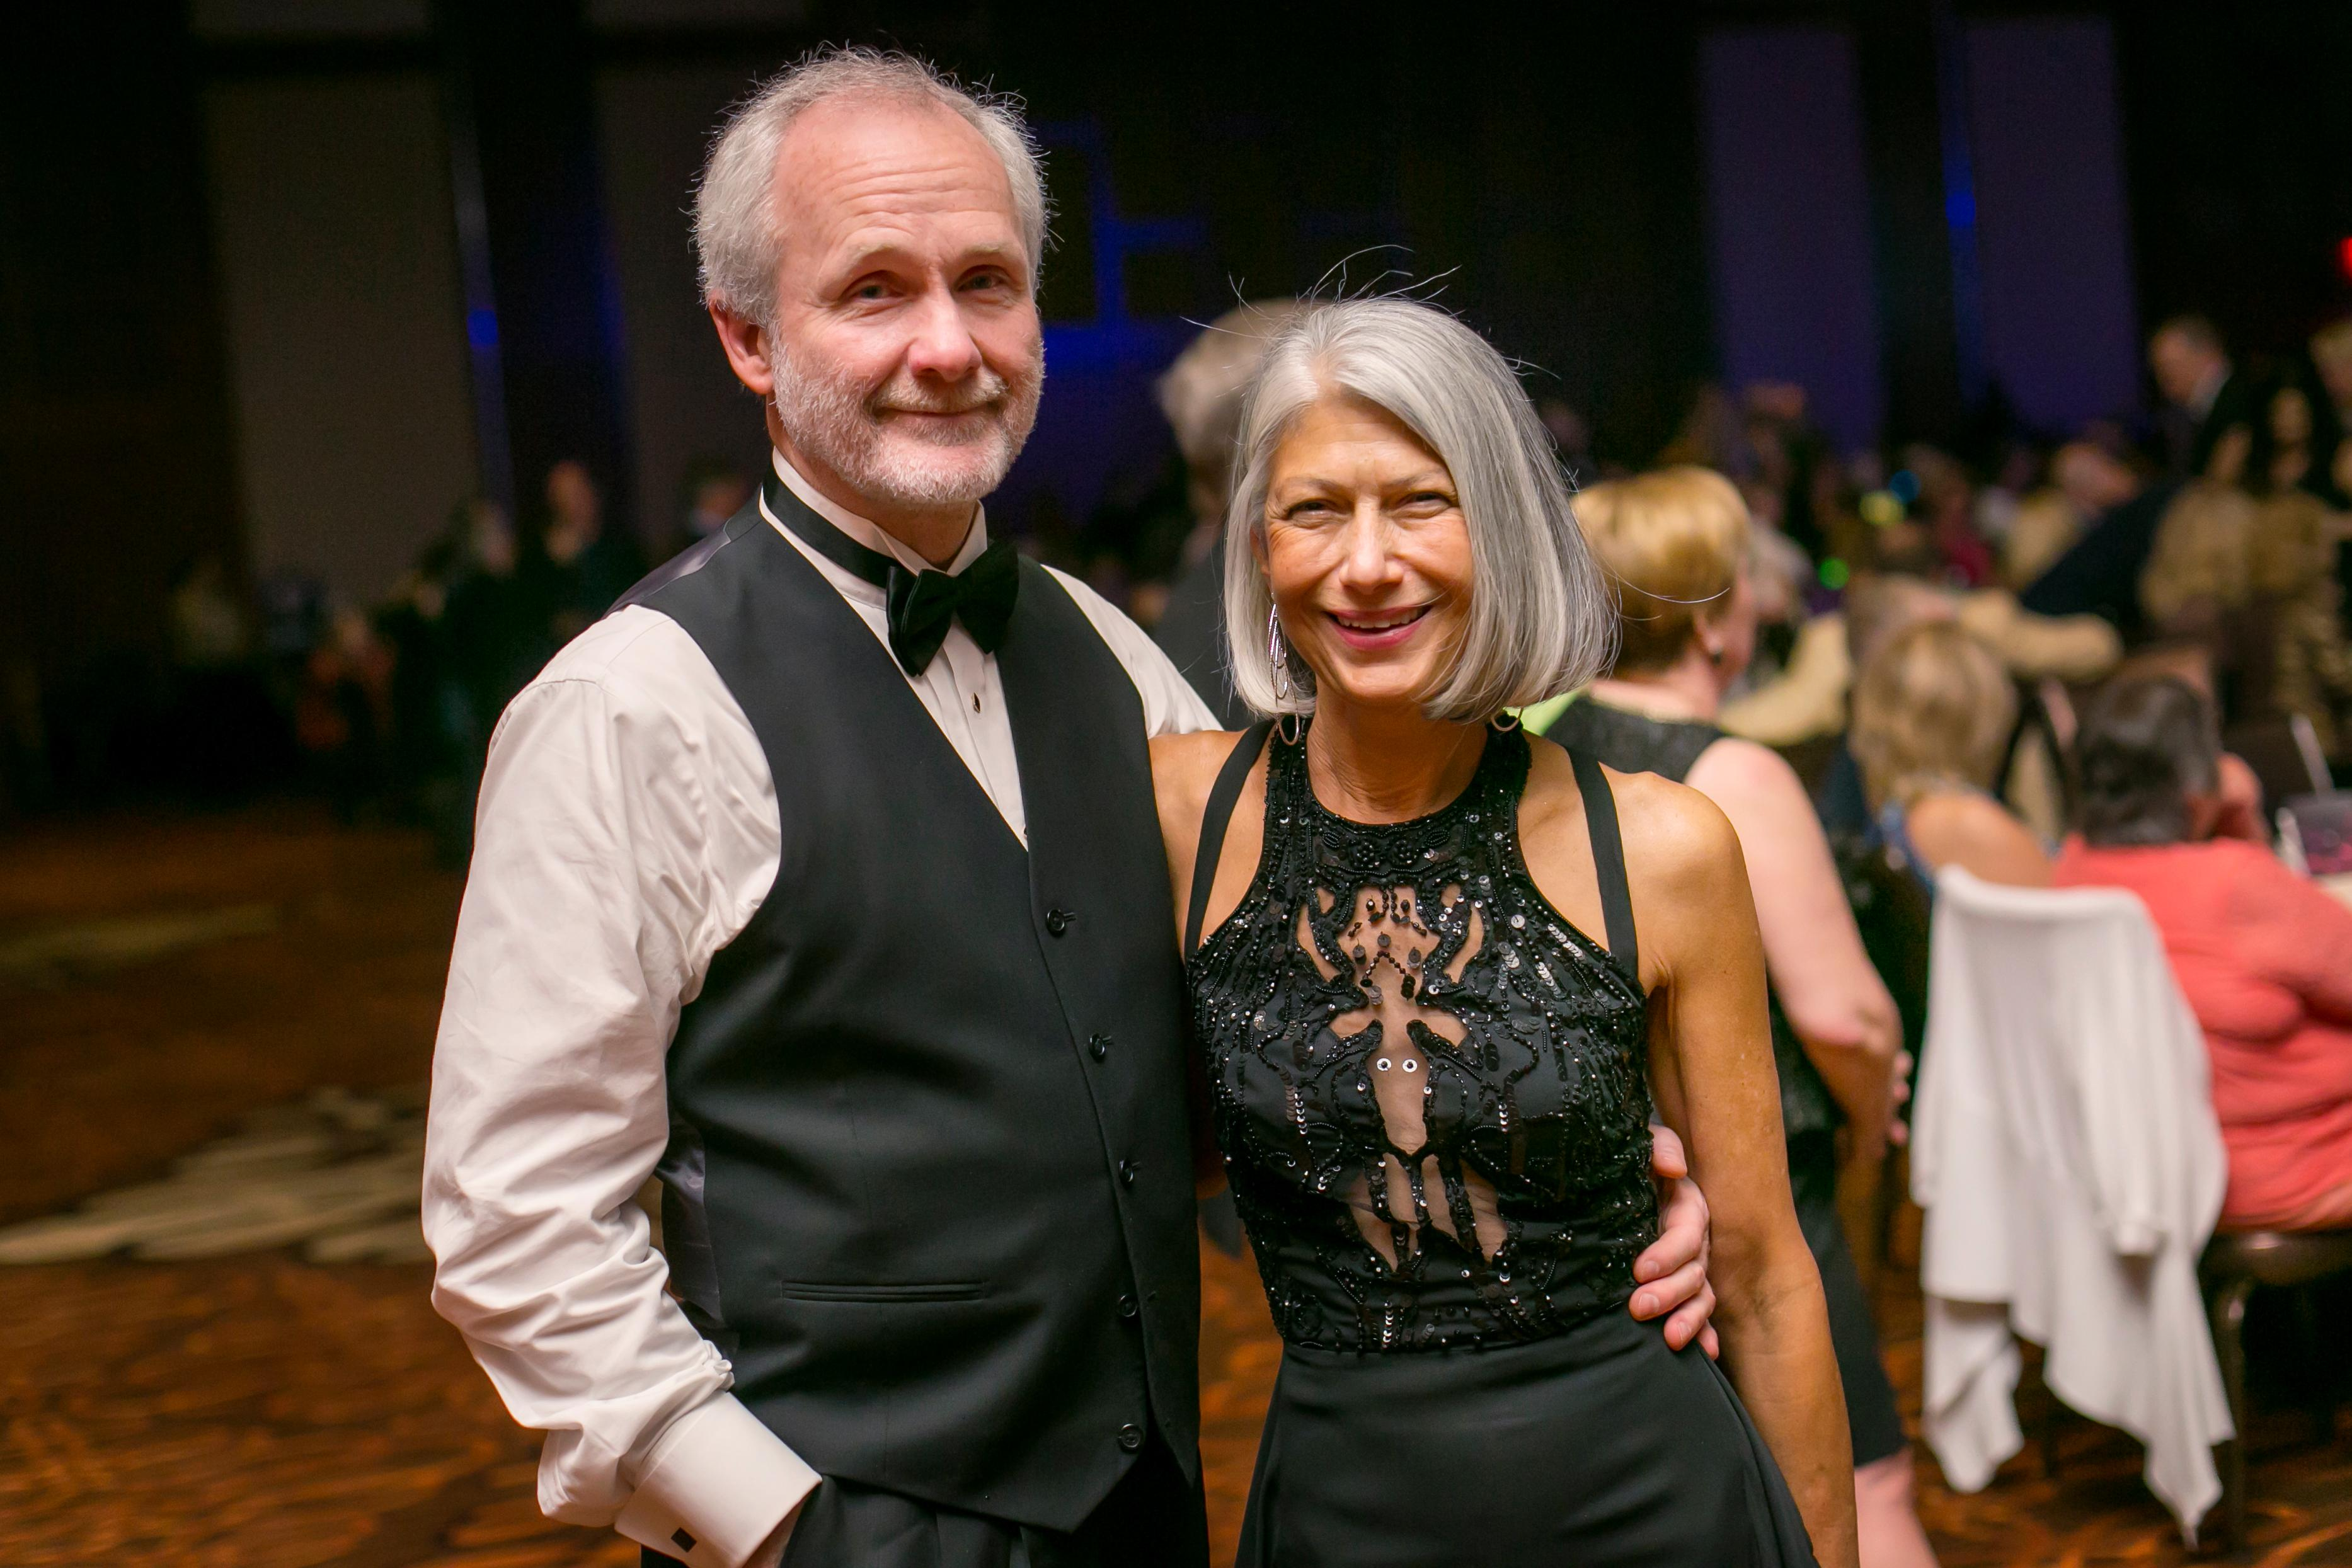 Jim Dennis and Nancy Crace / Image: Mike Bresnen Photography